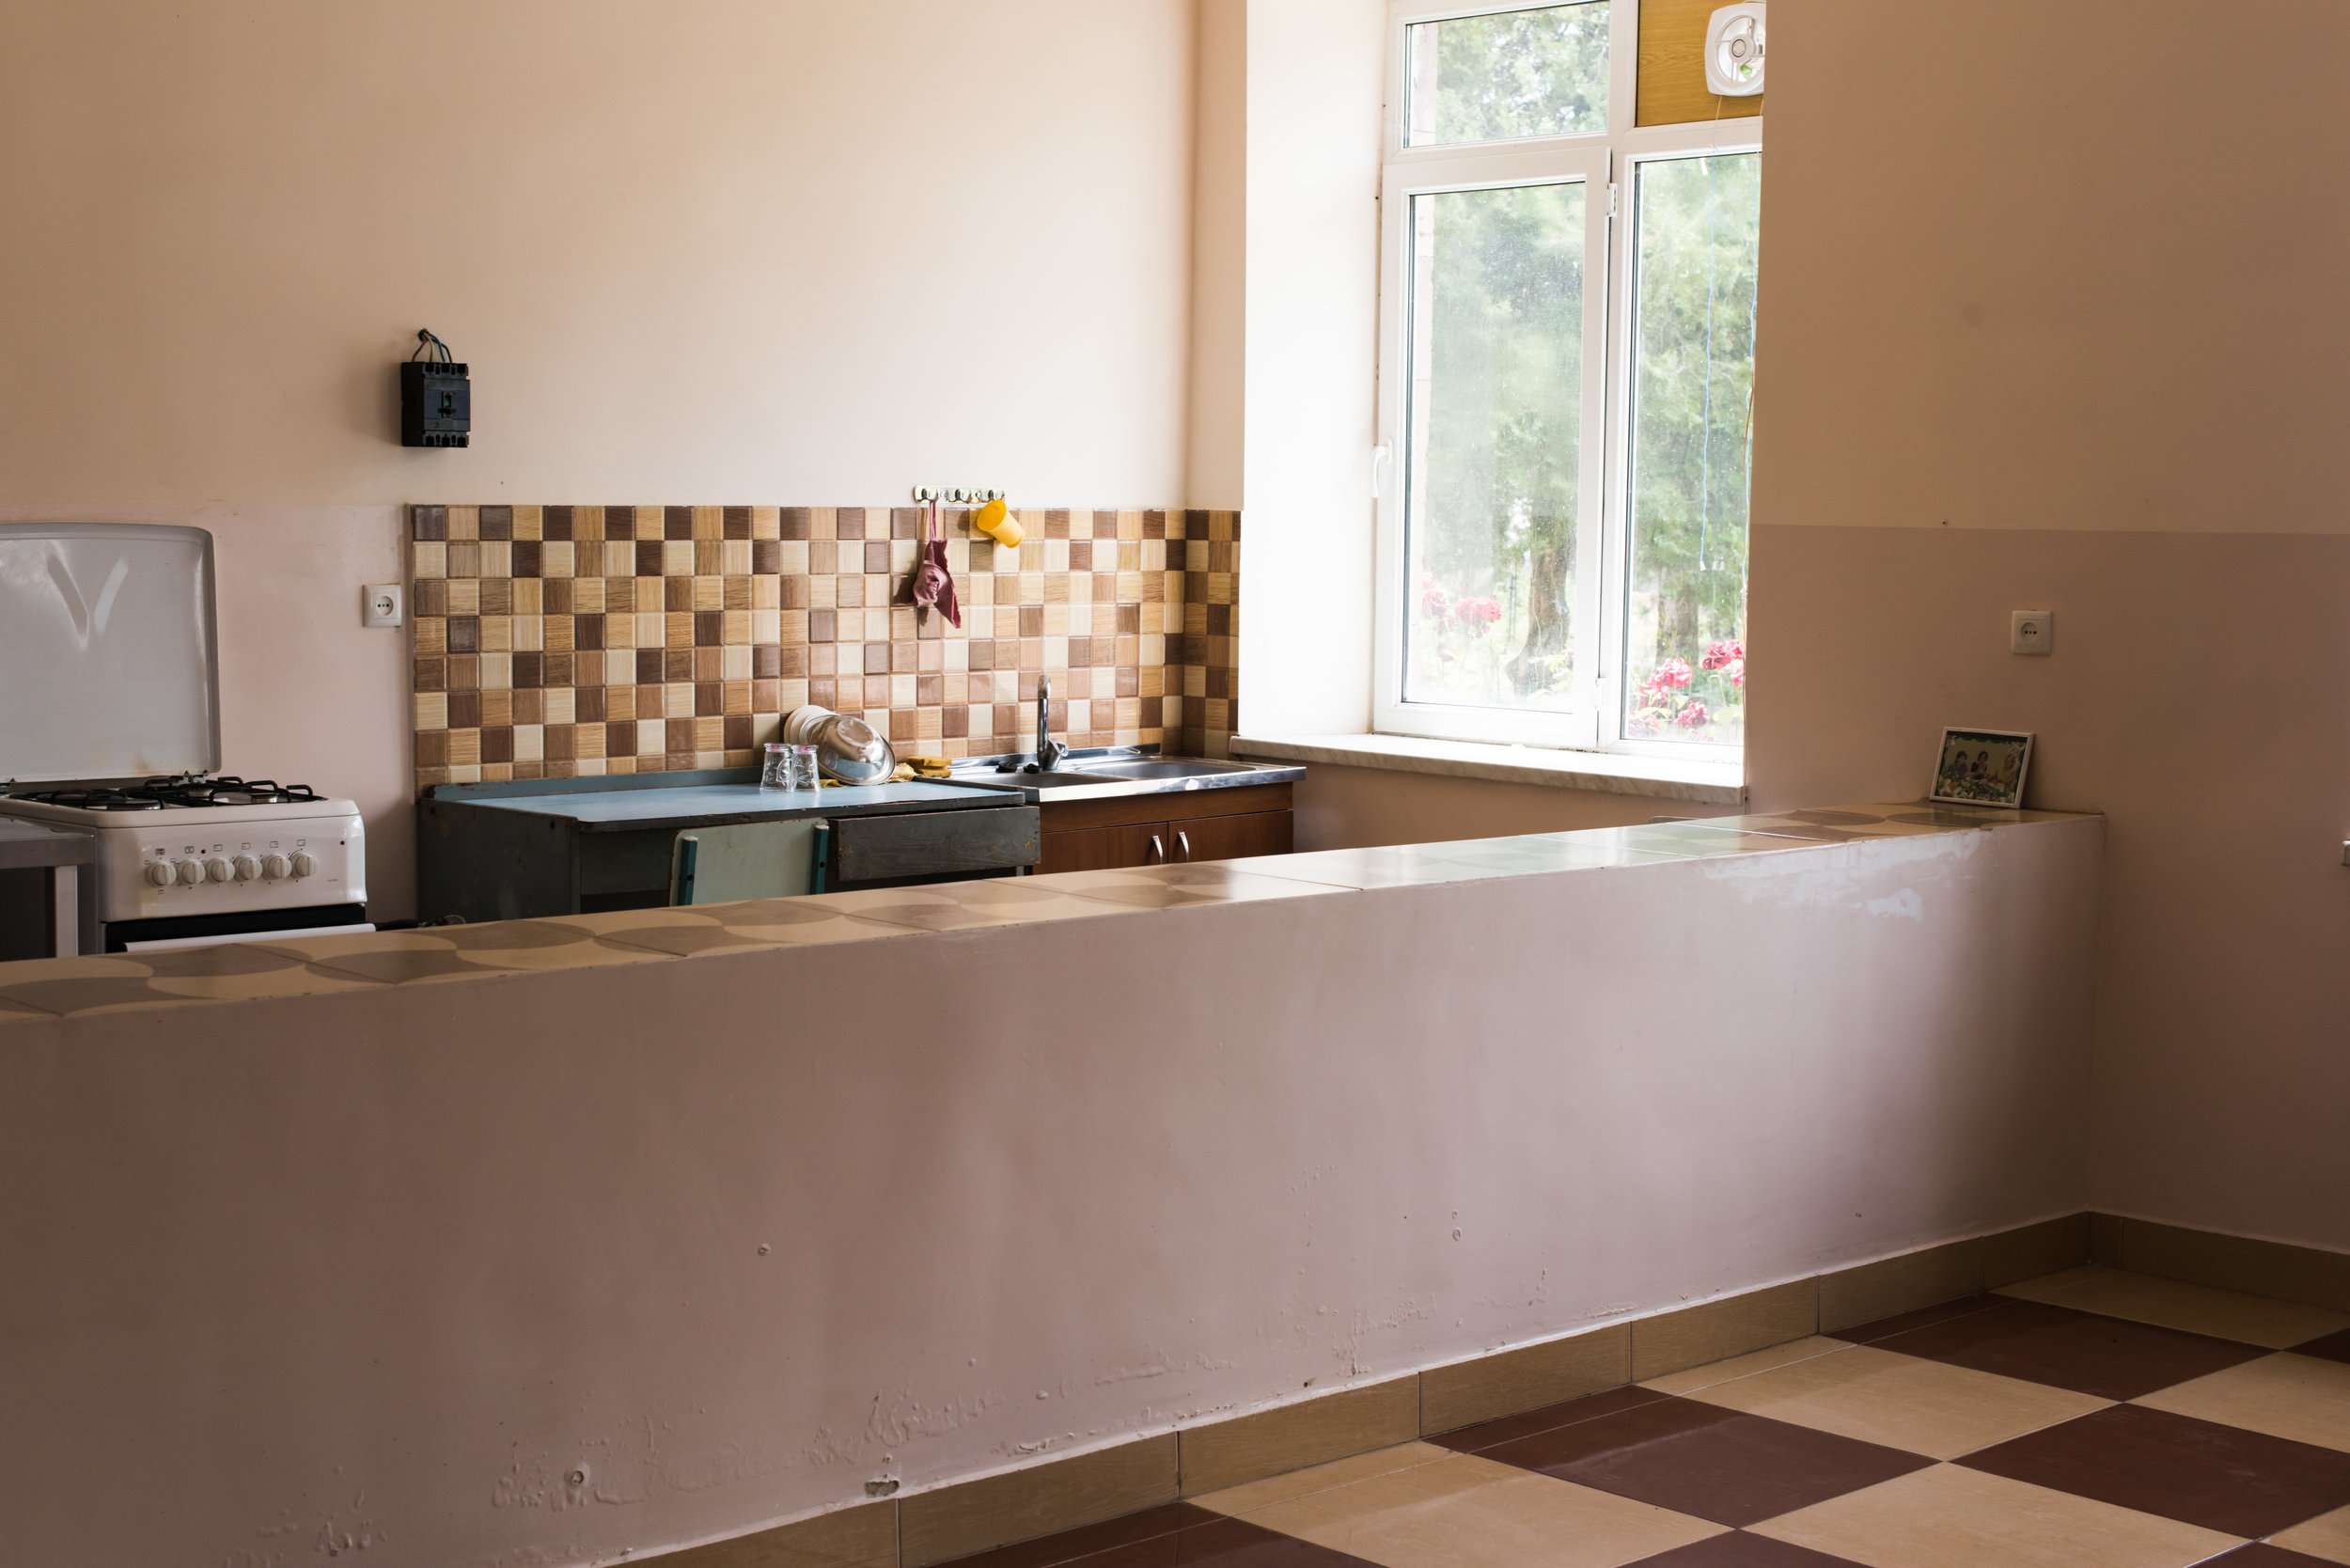 FAR restored the kitchen in Choratan's elementary school, where children can now enjoy nutritious meals.